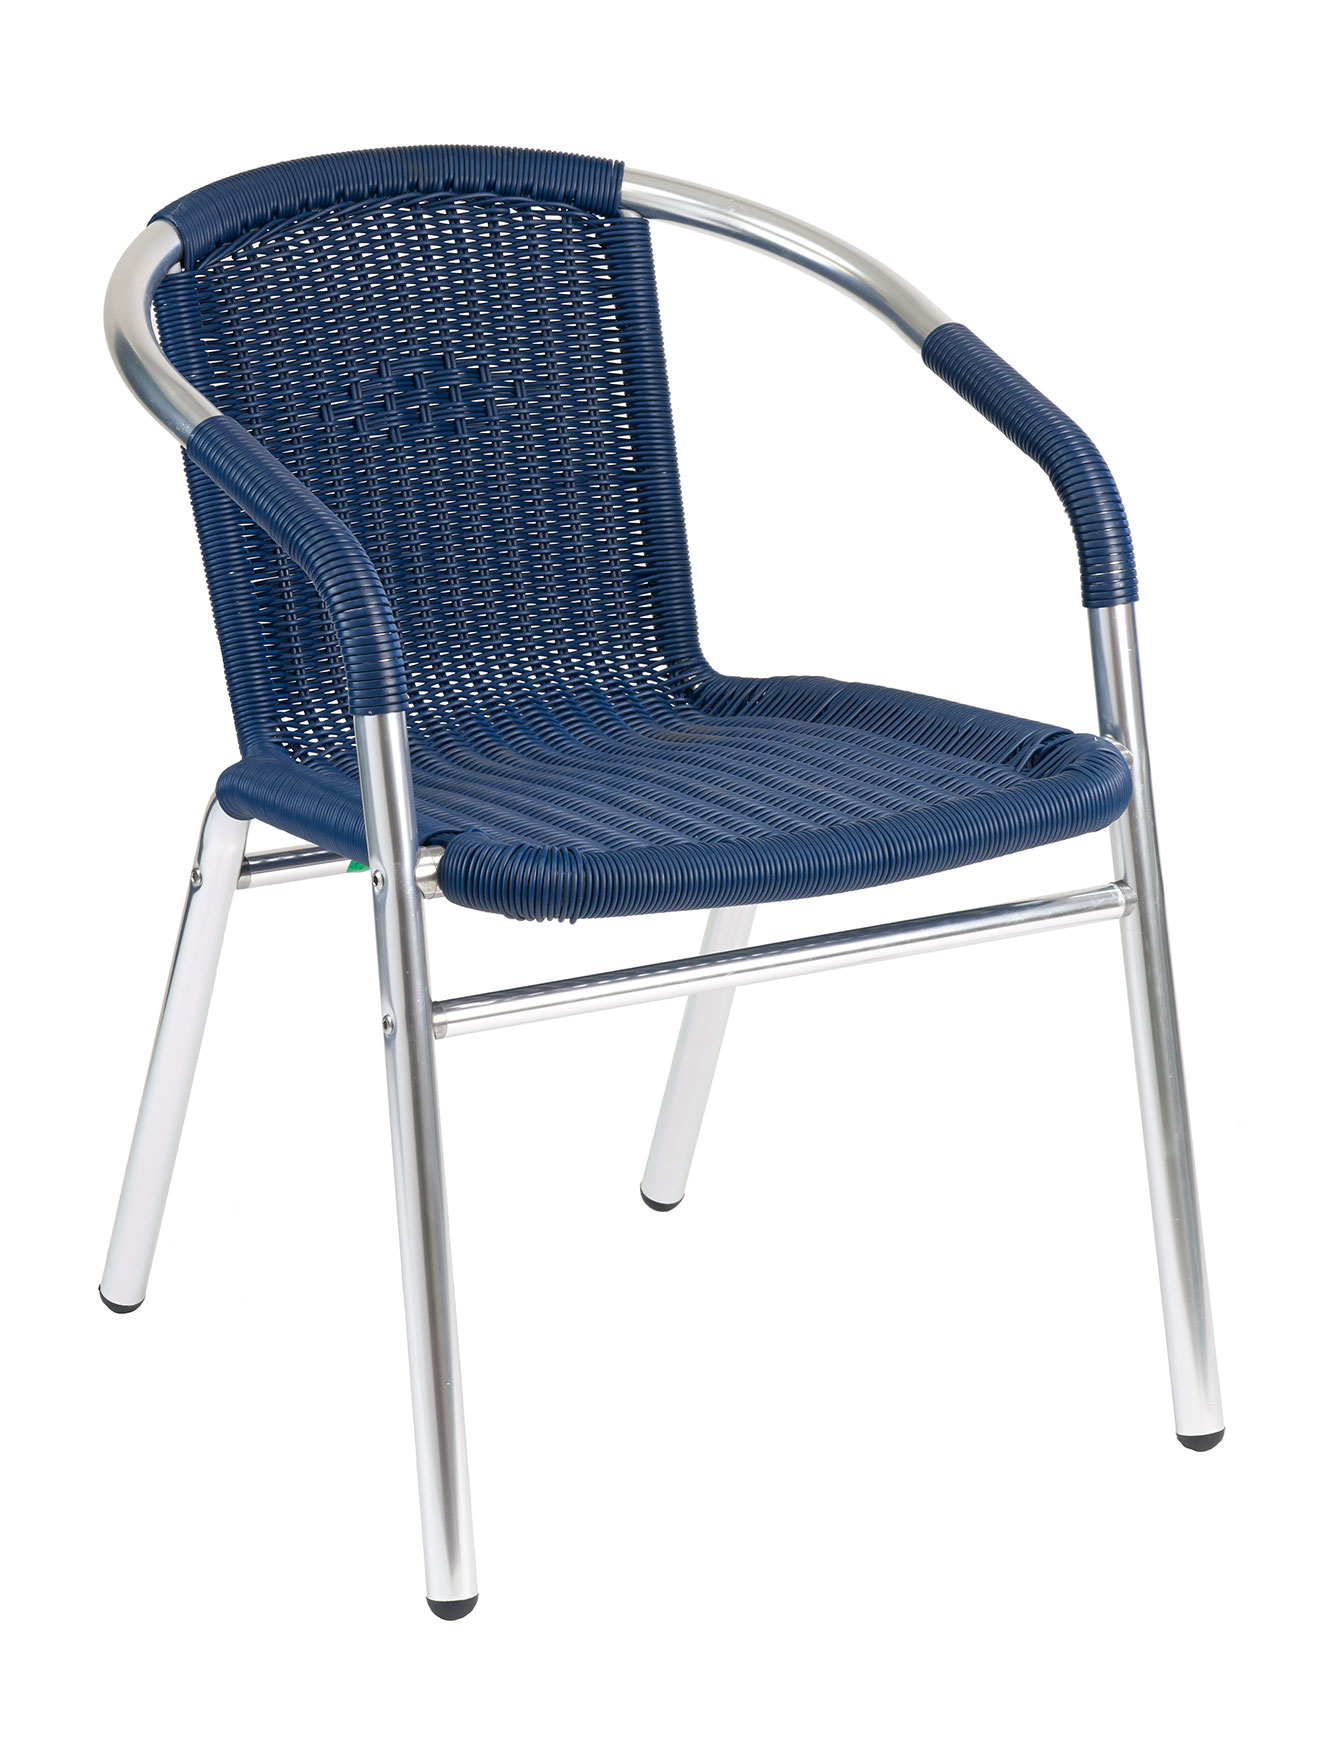 Round Frame Wicker Aluminum Chair